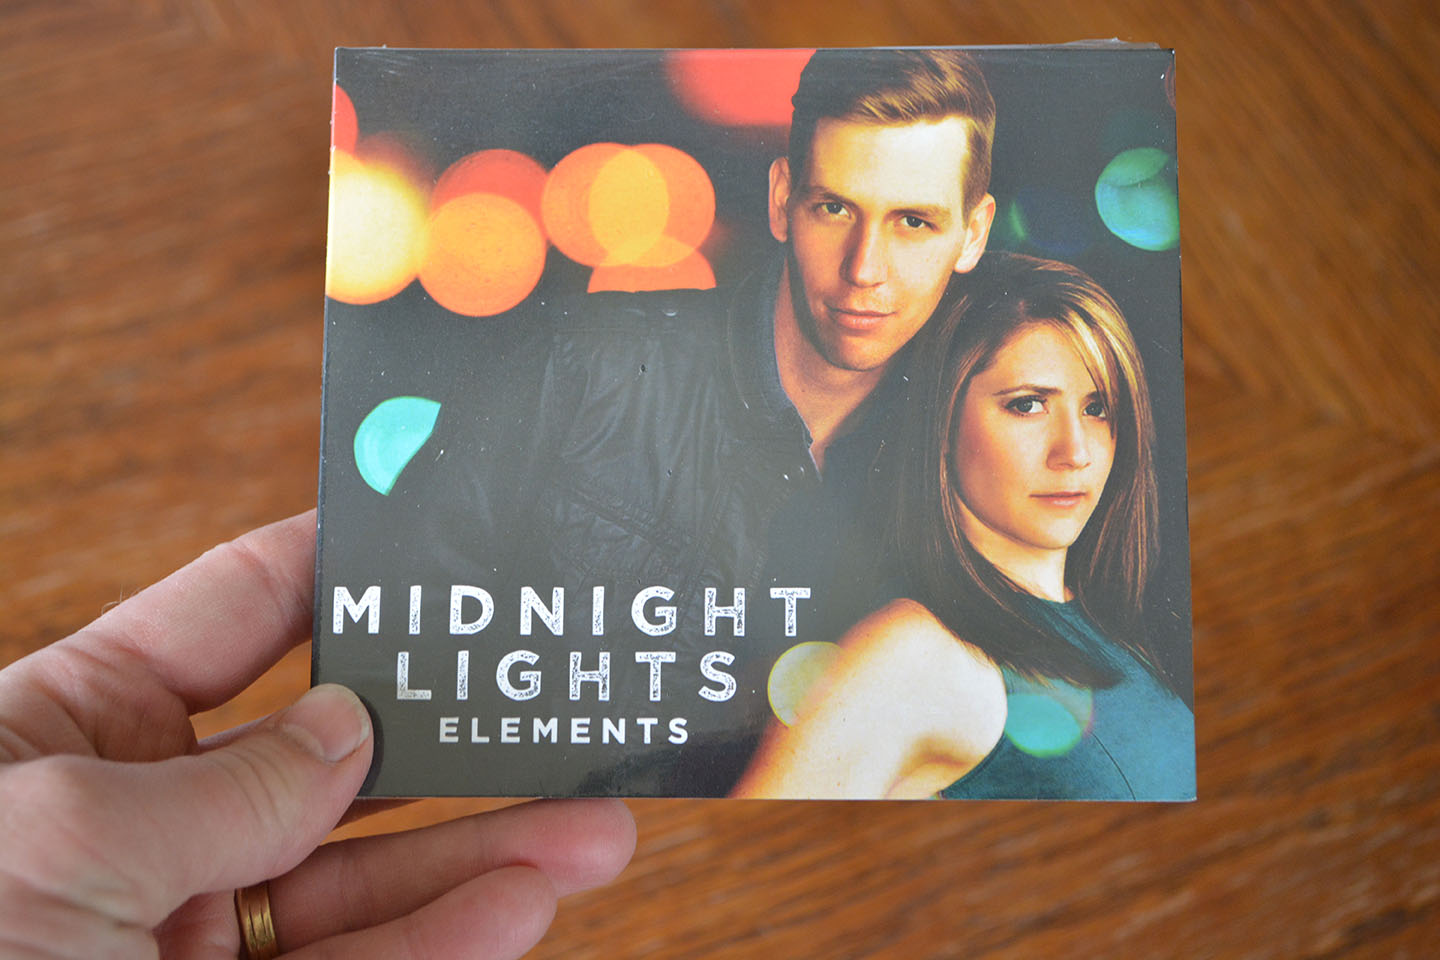 """Midnight Lights """"Elements"""" EP, just released. Check it out at  www.midnightlightsmusic.com ."""